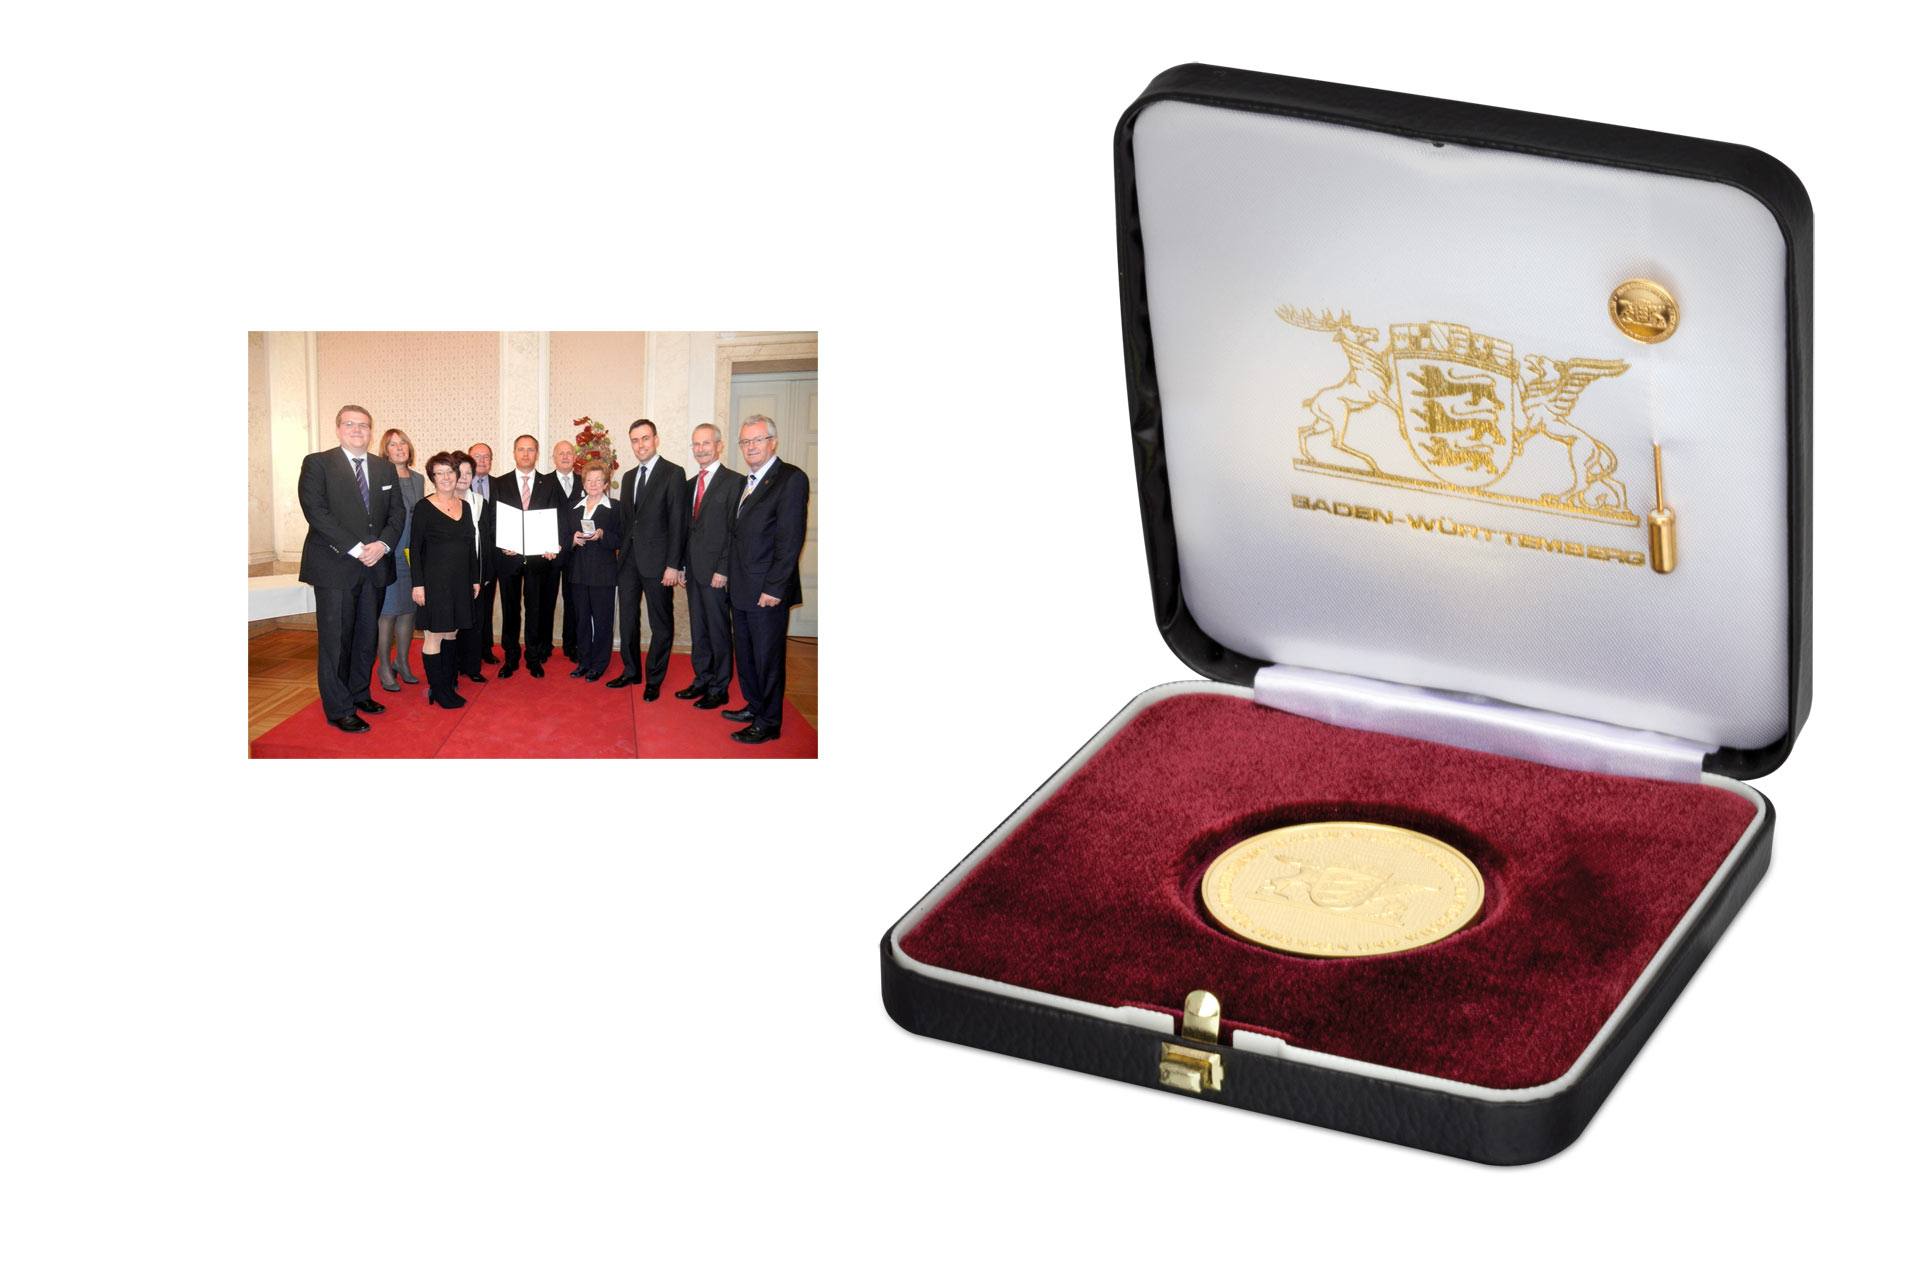 Recognition to Edelstahl Rosswag through the Industry Medal of Baden-Württemberg State